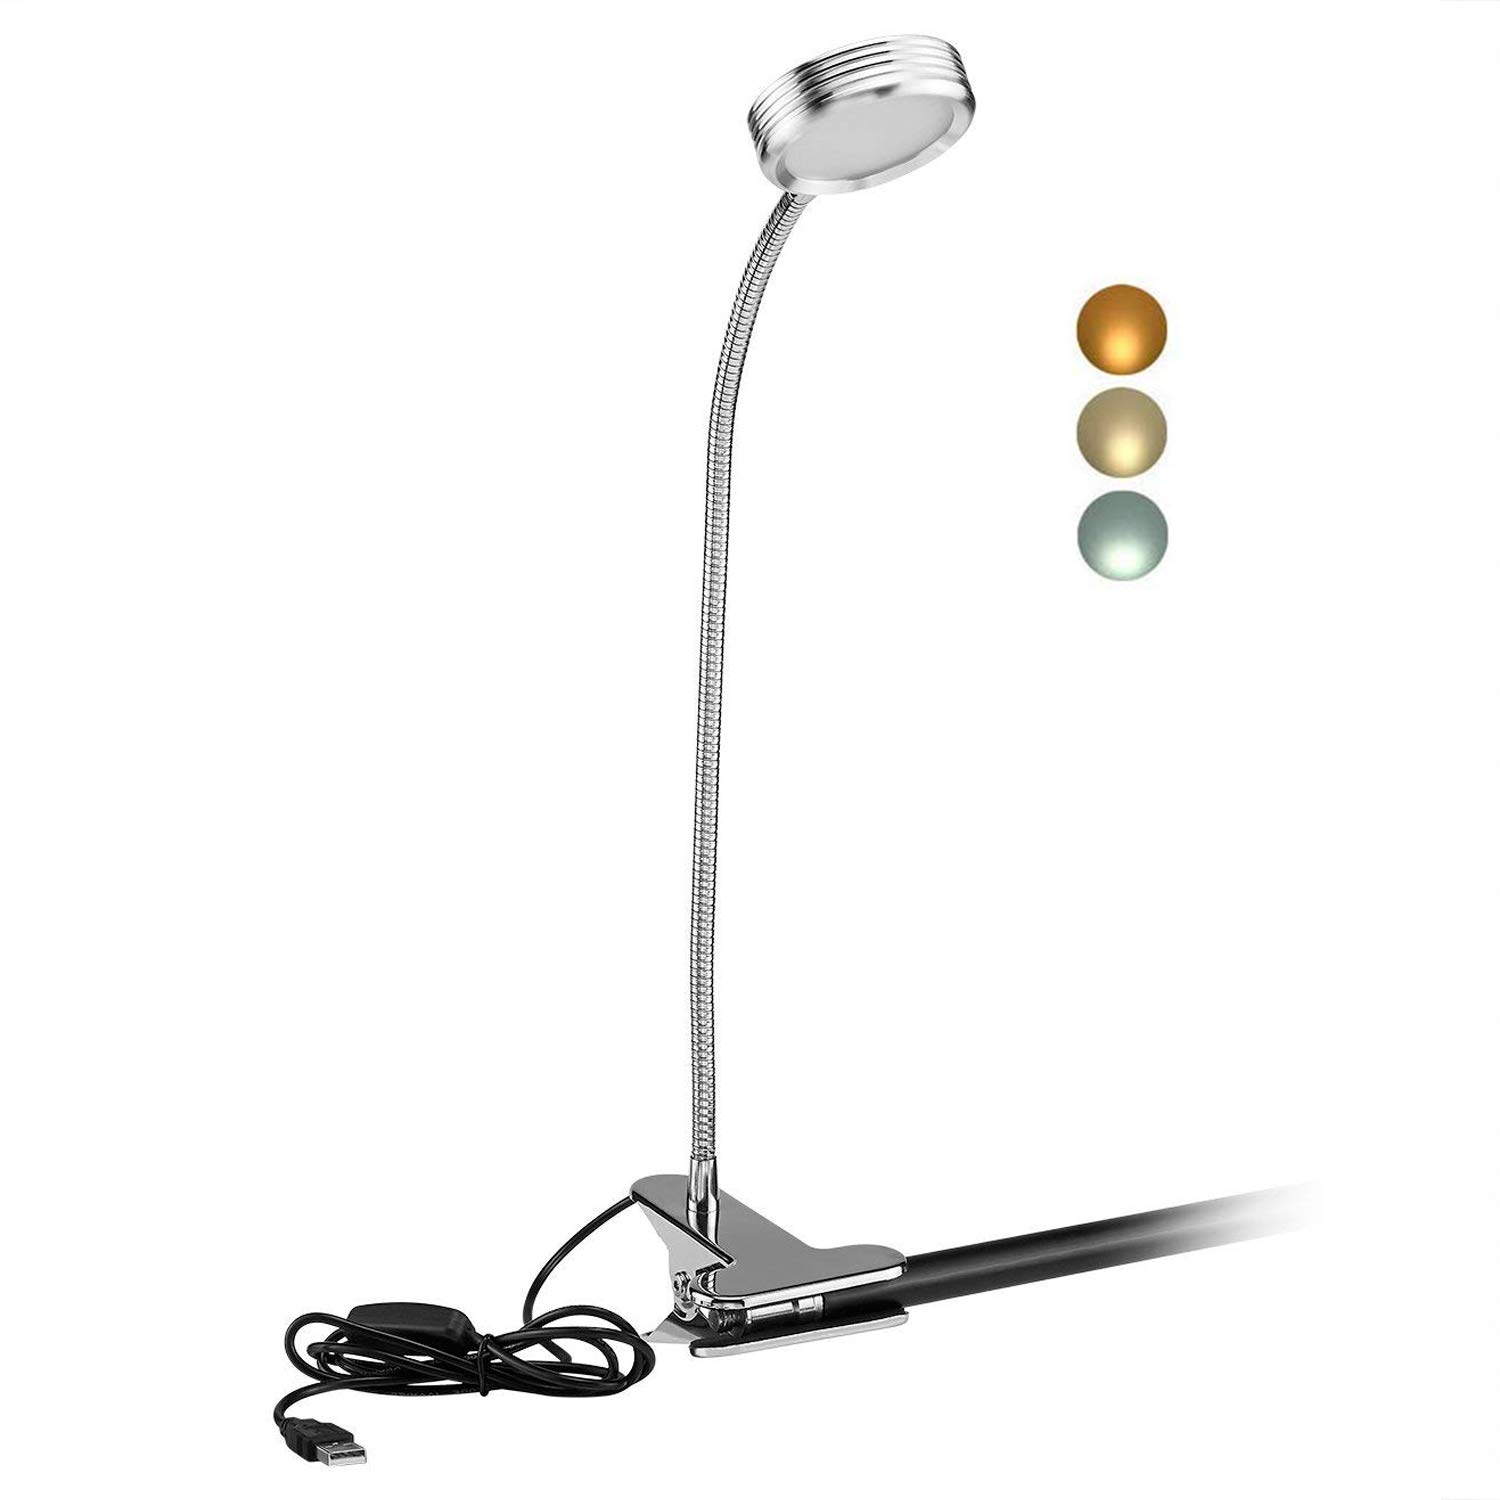 Clamp Desk Lamp, Clip on Reading Light, LED Levels Brightness 6 Illumination Modes Night Light for Desk, Bed Light, Bed headboard, AC Adapter and USB Cord Included (Silver) Werded